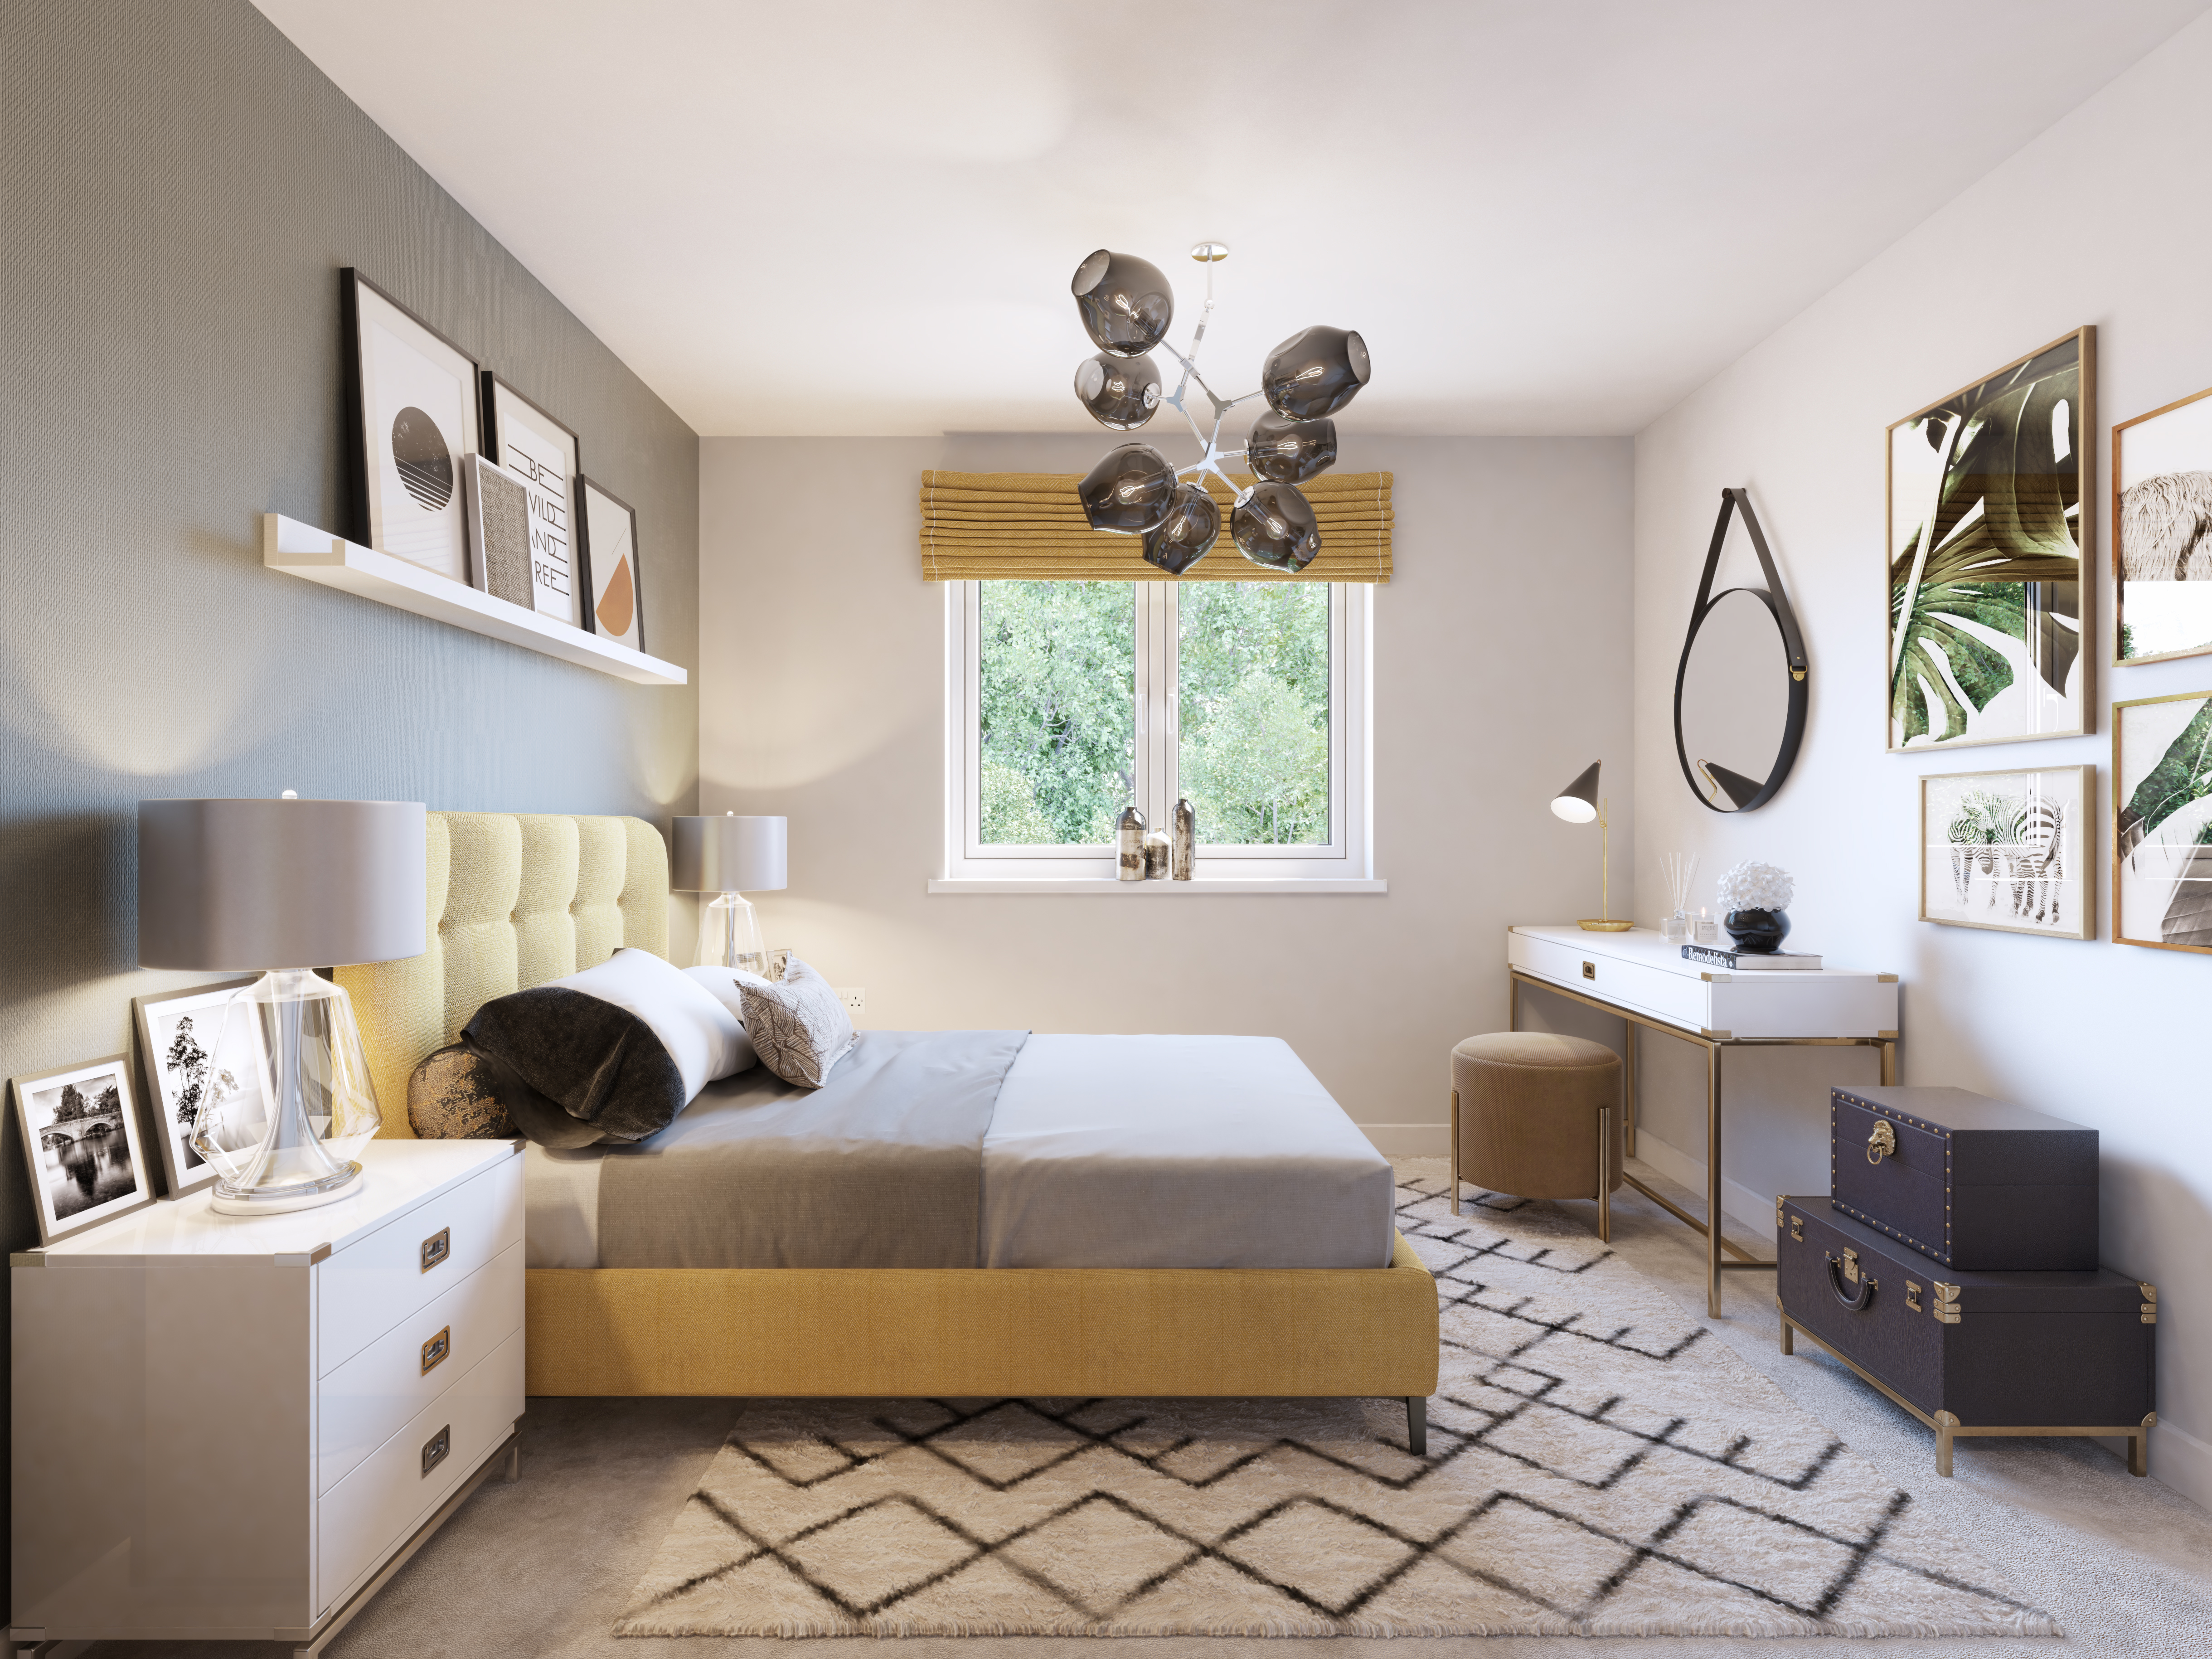 The Dunlop CGI - Bedroom 2